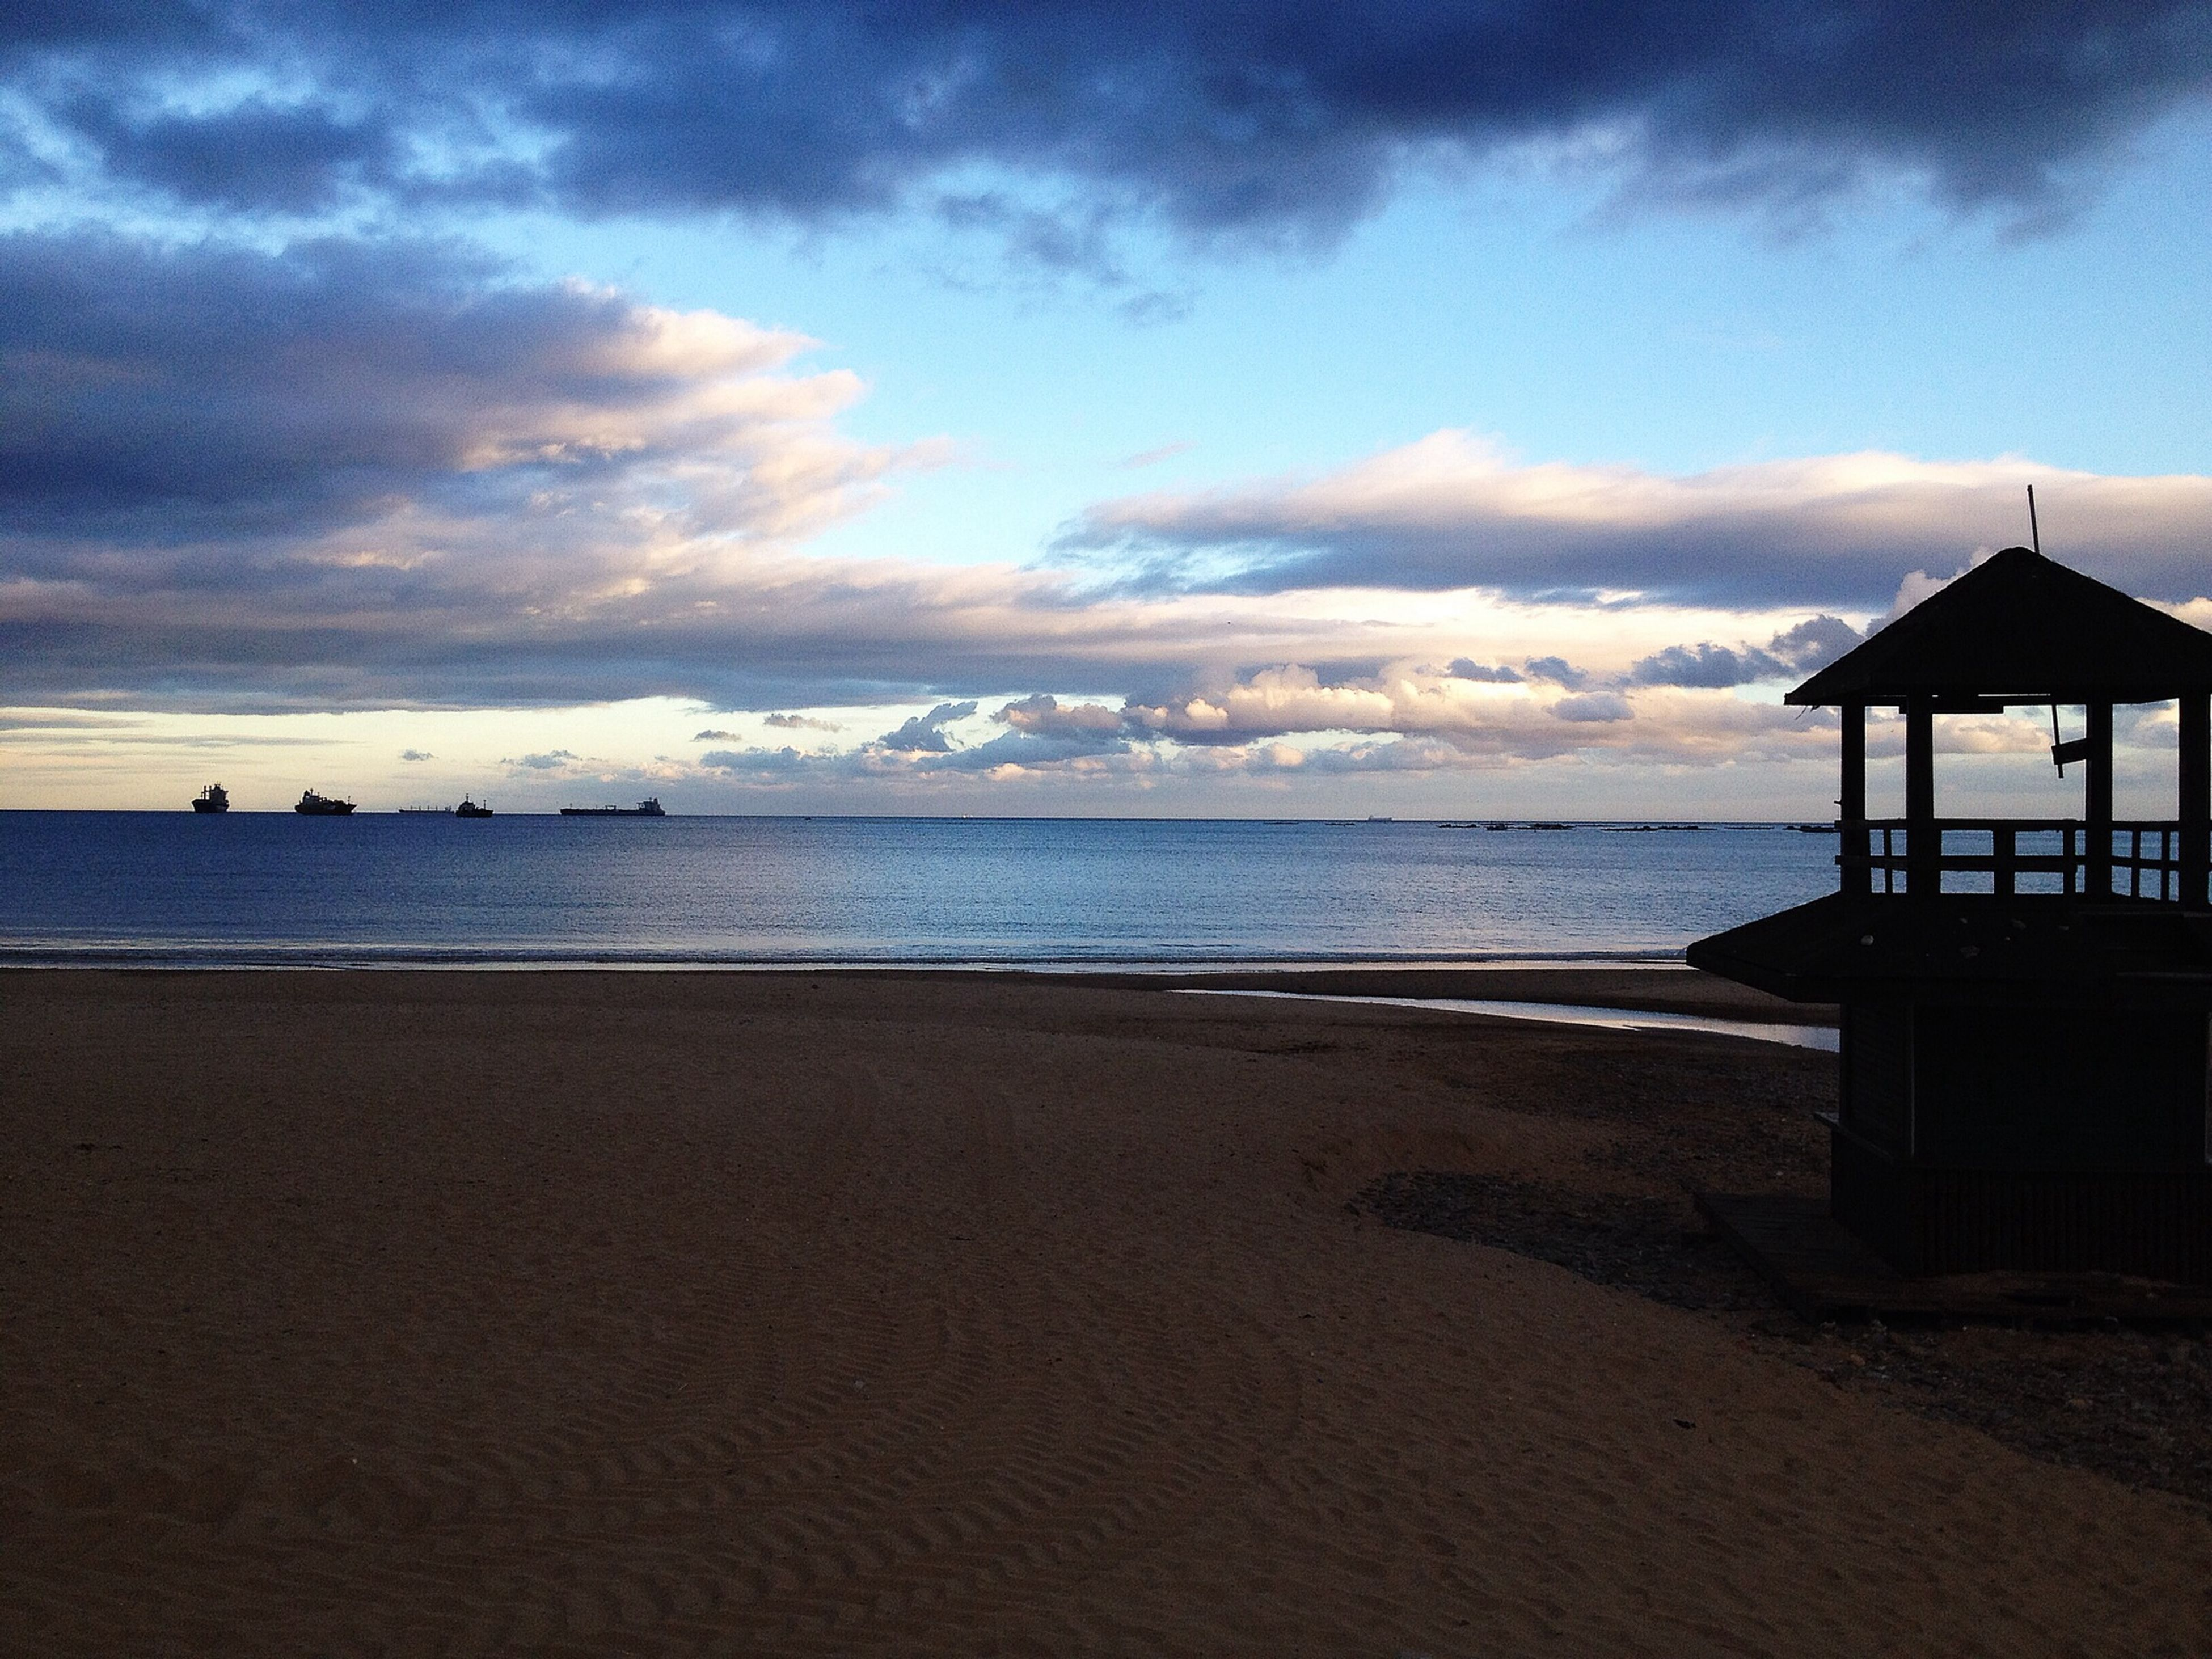 sea, horizon over water, beach, sky, water, shore, sand, tranquil scene, scenics, tranquility, cloud - sky, beauty in nature, built structure, cloud, nature, architecture, idyllic, building exterior, cloudy, calm